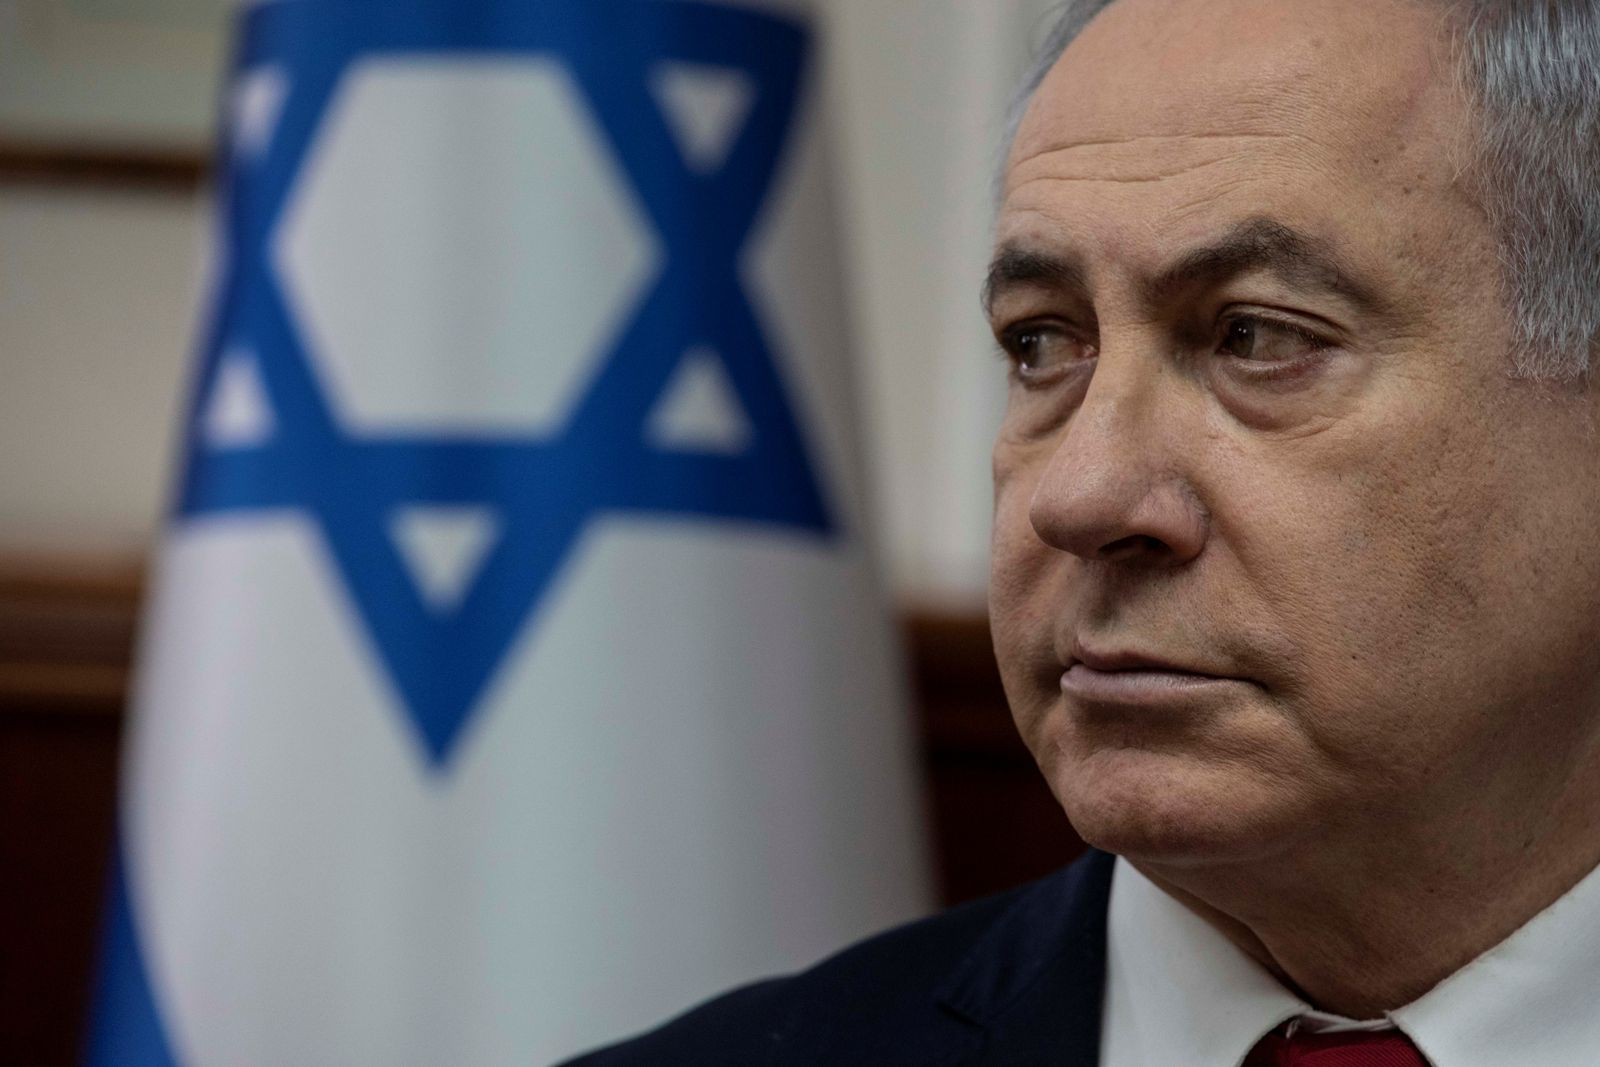 Israeli PM Benjamin Netanyahu attends the weekly cabinet meeting at the Prime Minister's office in Jerusalem